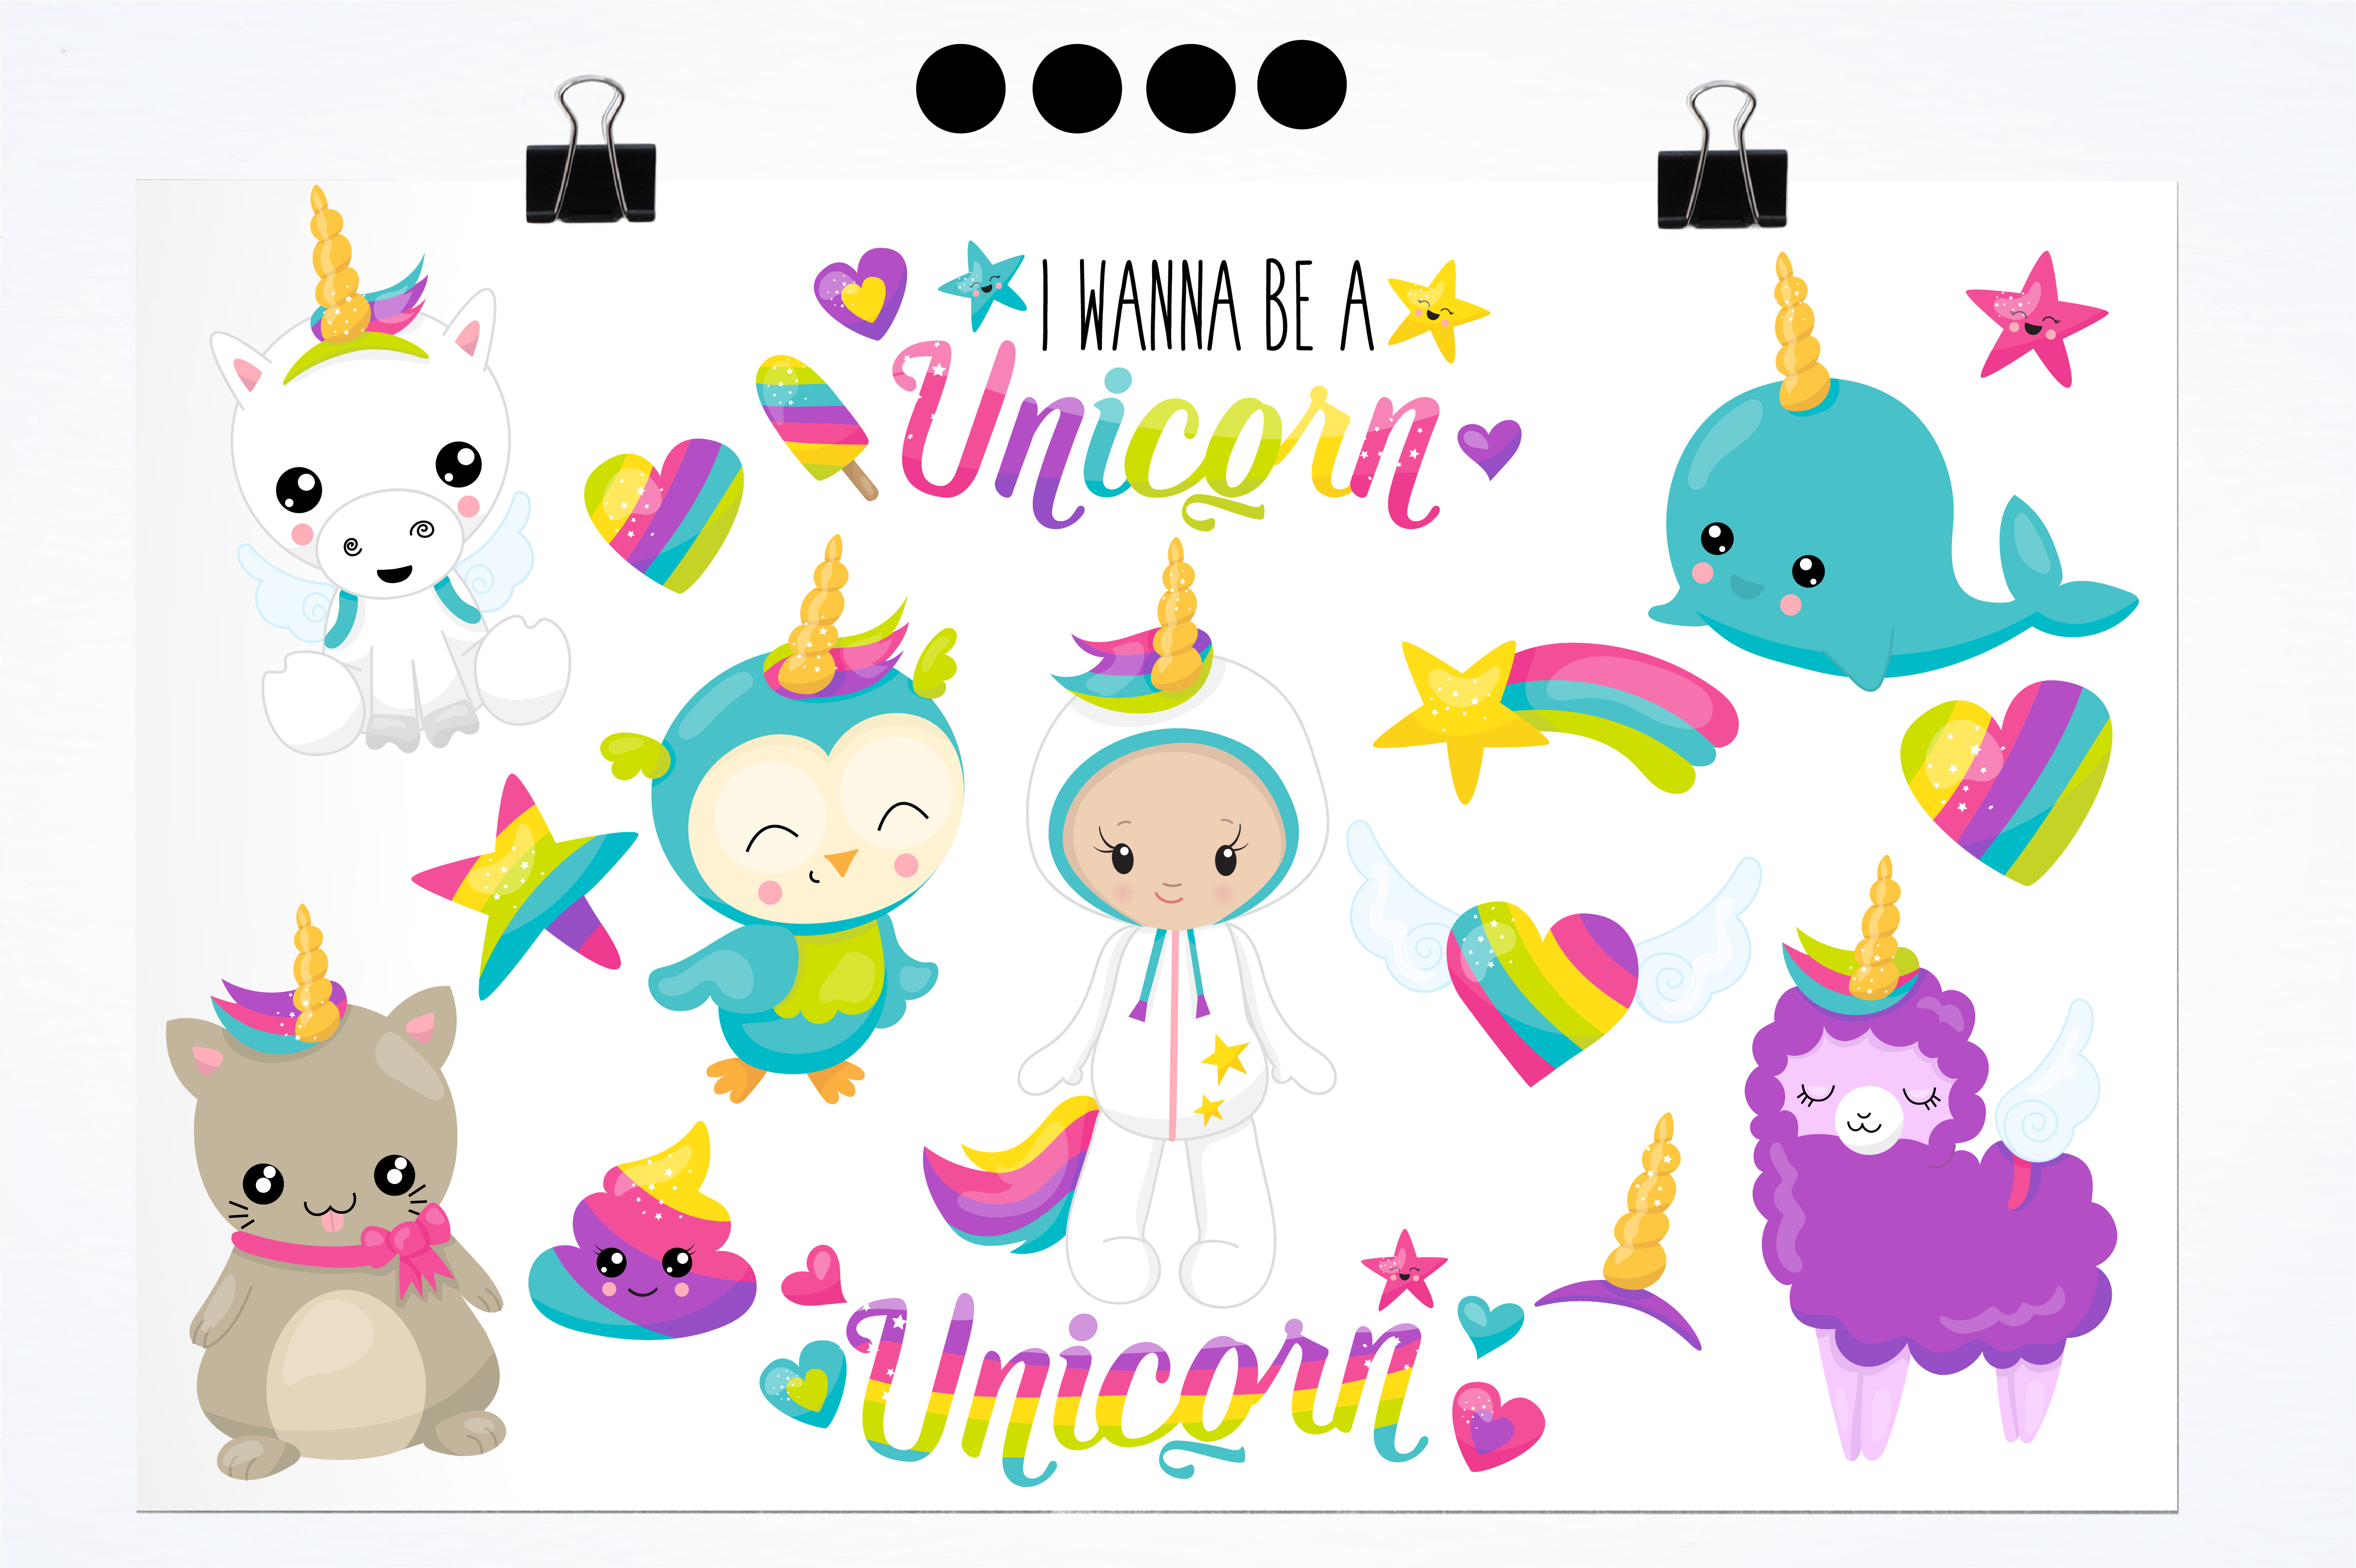 Wannabe unicorn graphics and illustrations example image 2